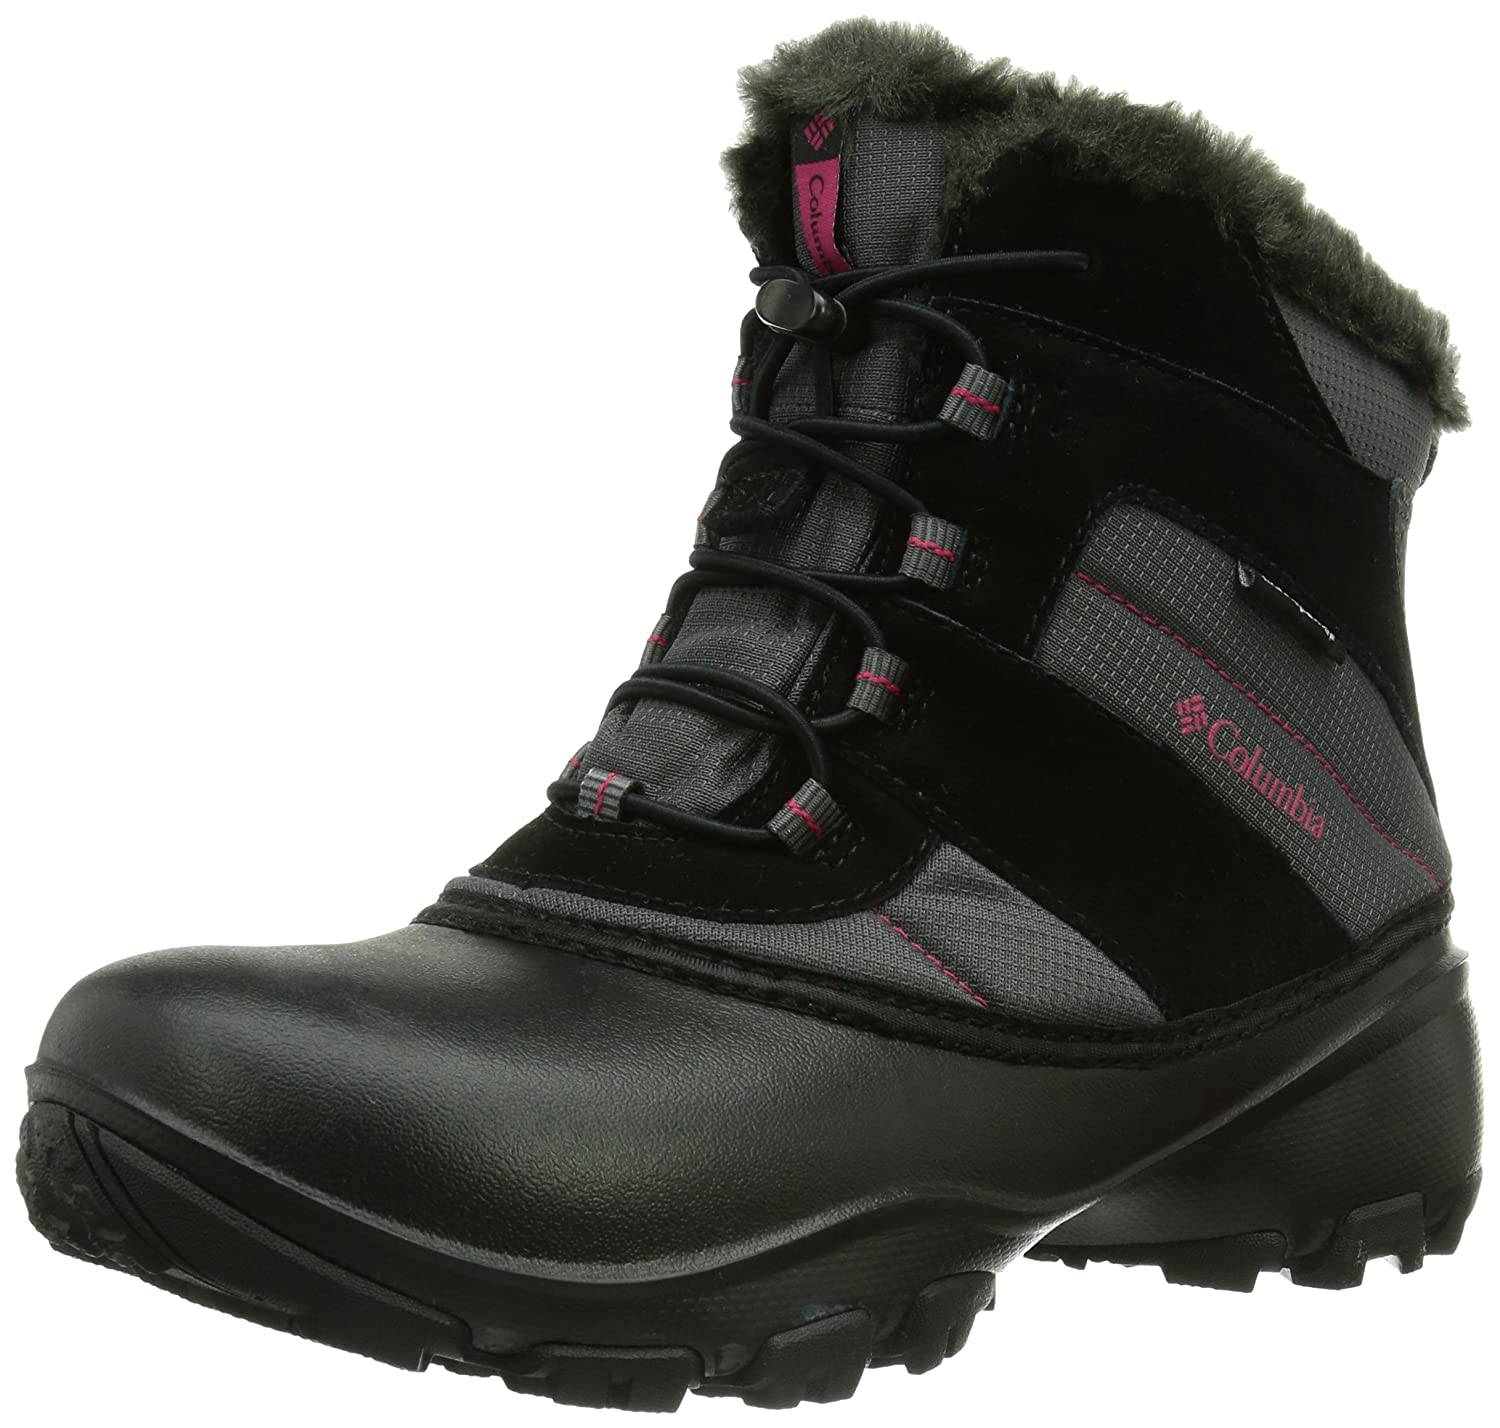 Columbia Youth Rope Tow Iii Waterproof Unisex-Kinder Warm gefütterte Schneestiefel